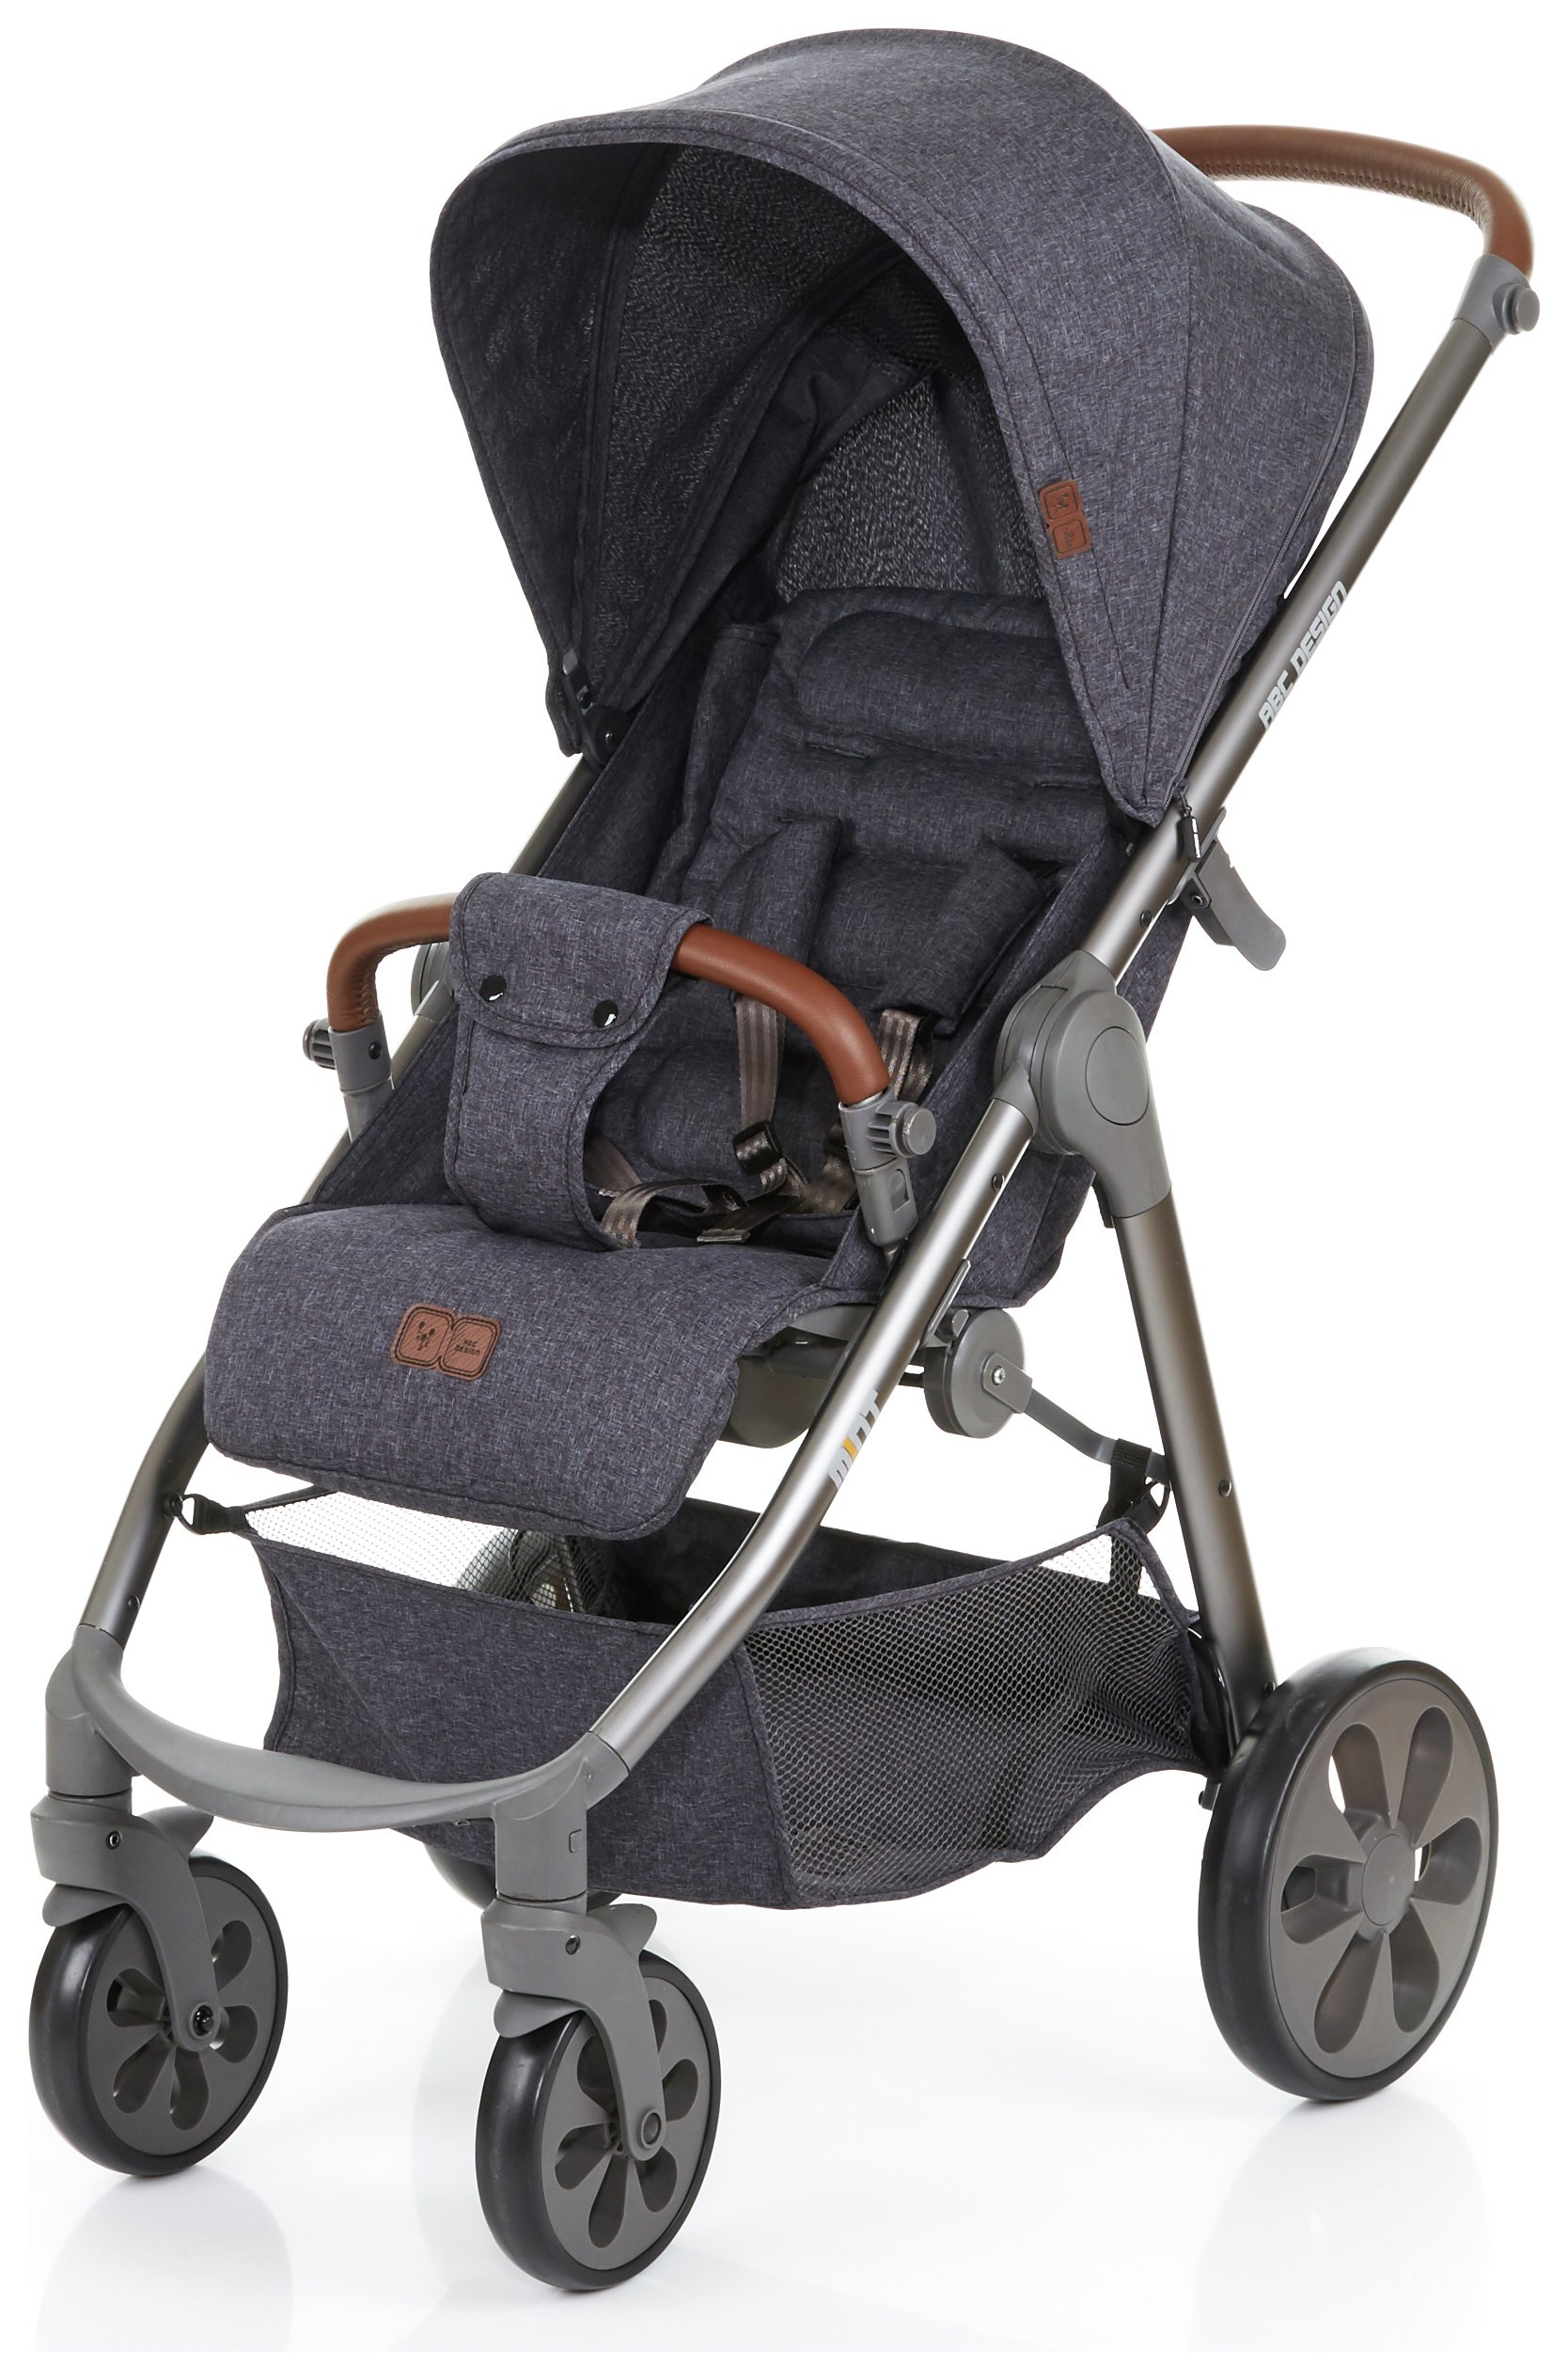 Image of ABC Design Mint Stroller ??? Street